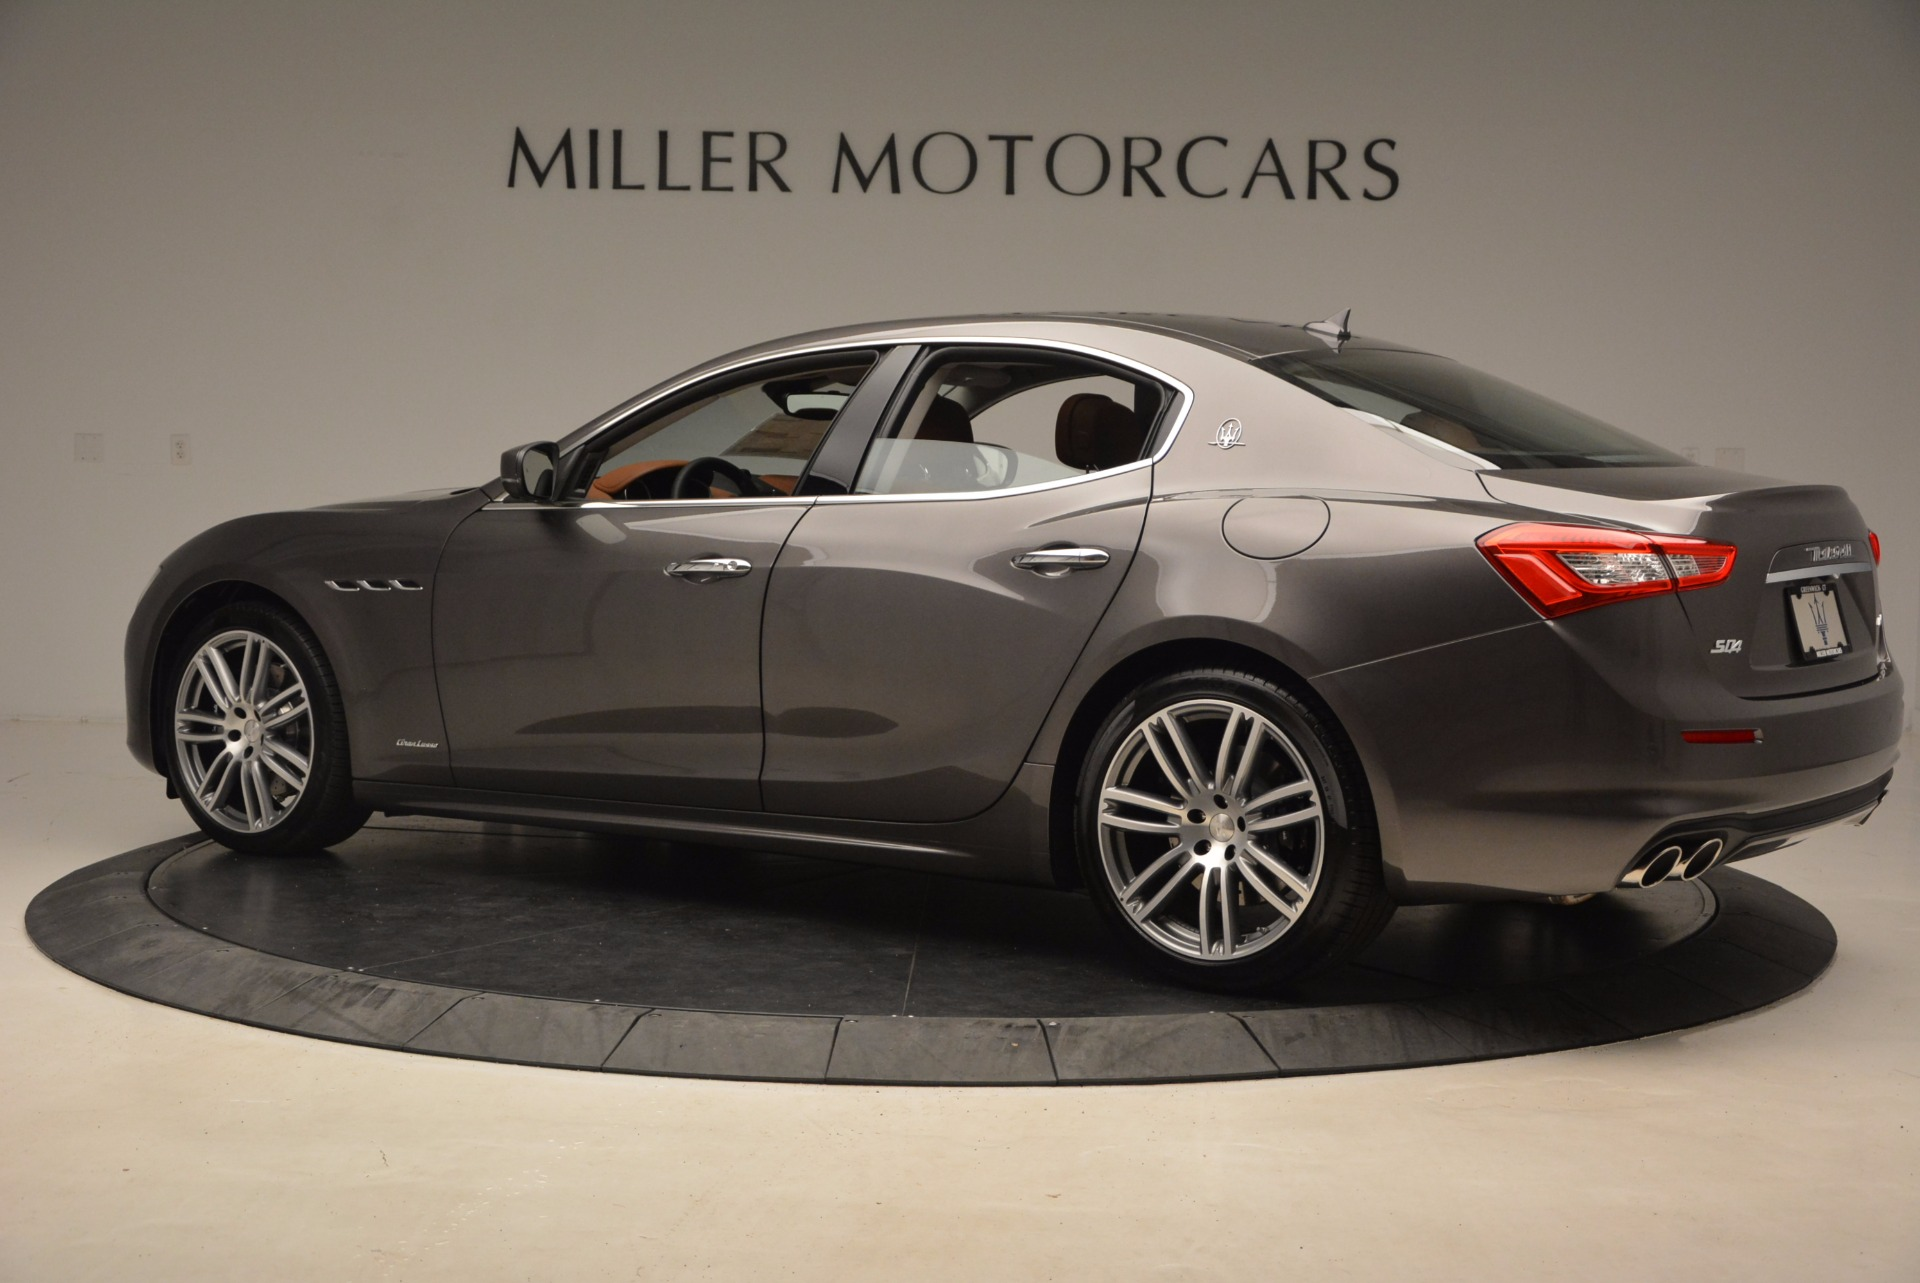 New 2018 Maserati Ghibli S Q4 GranLusso For Sale In Greenwich, CT 1896_p4